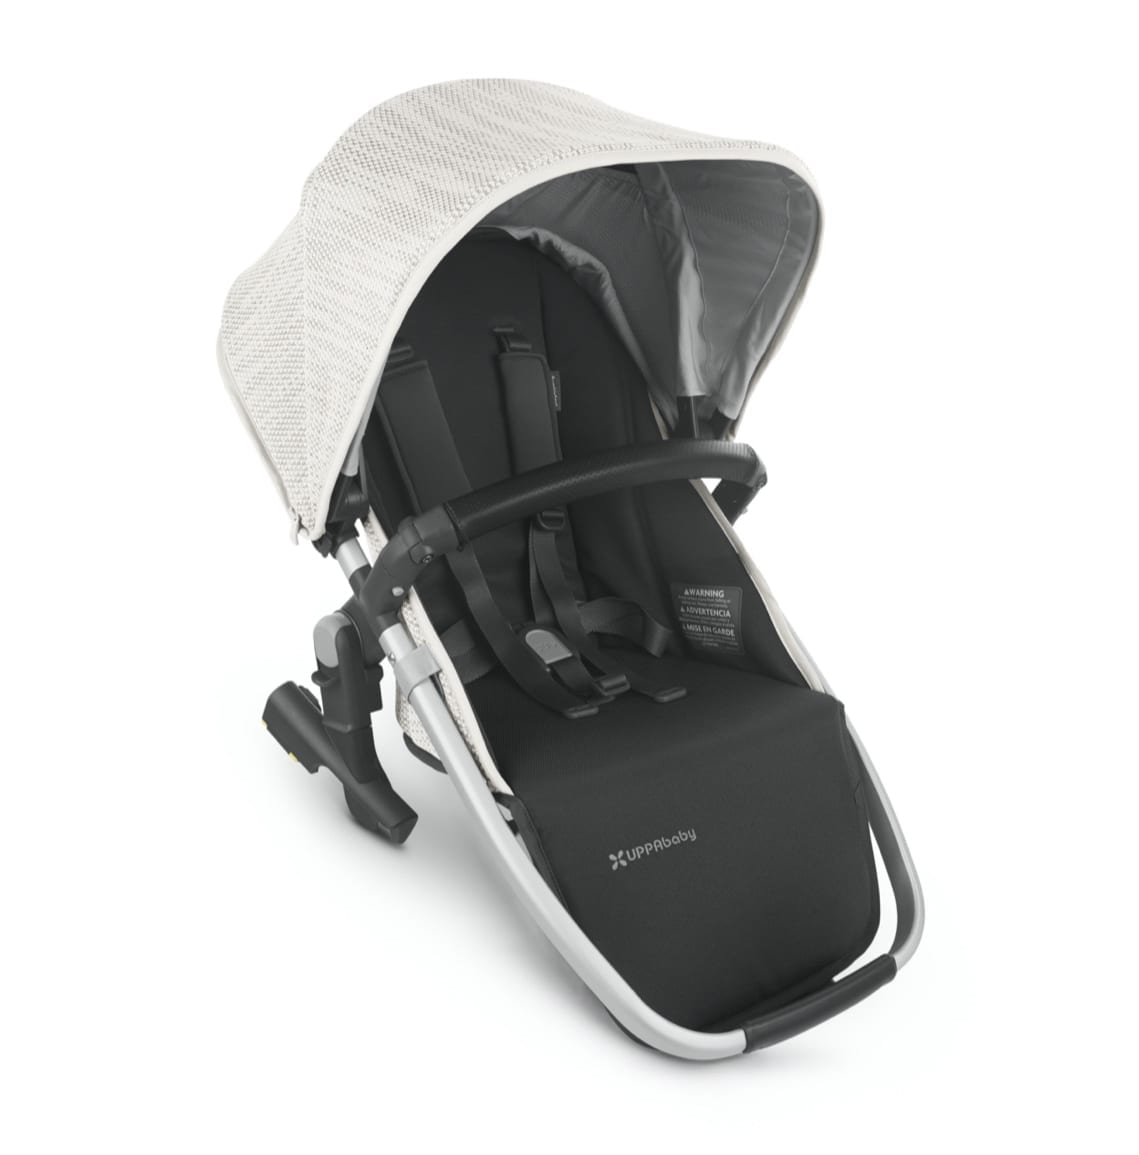 UPPABaby VISTA 2 Rumble Seat – SIERRA product image